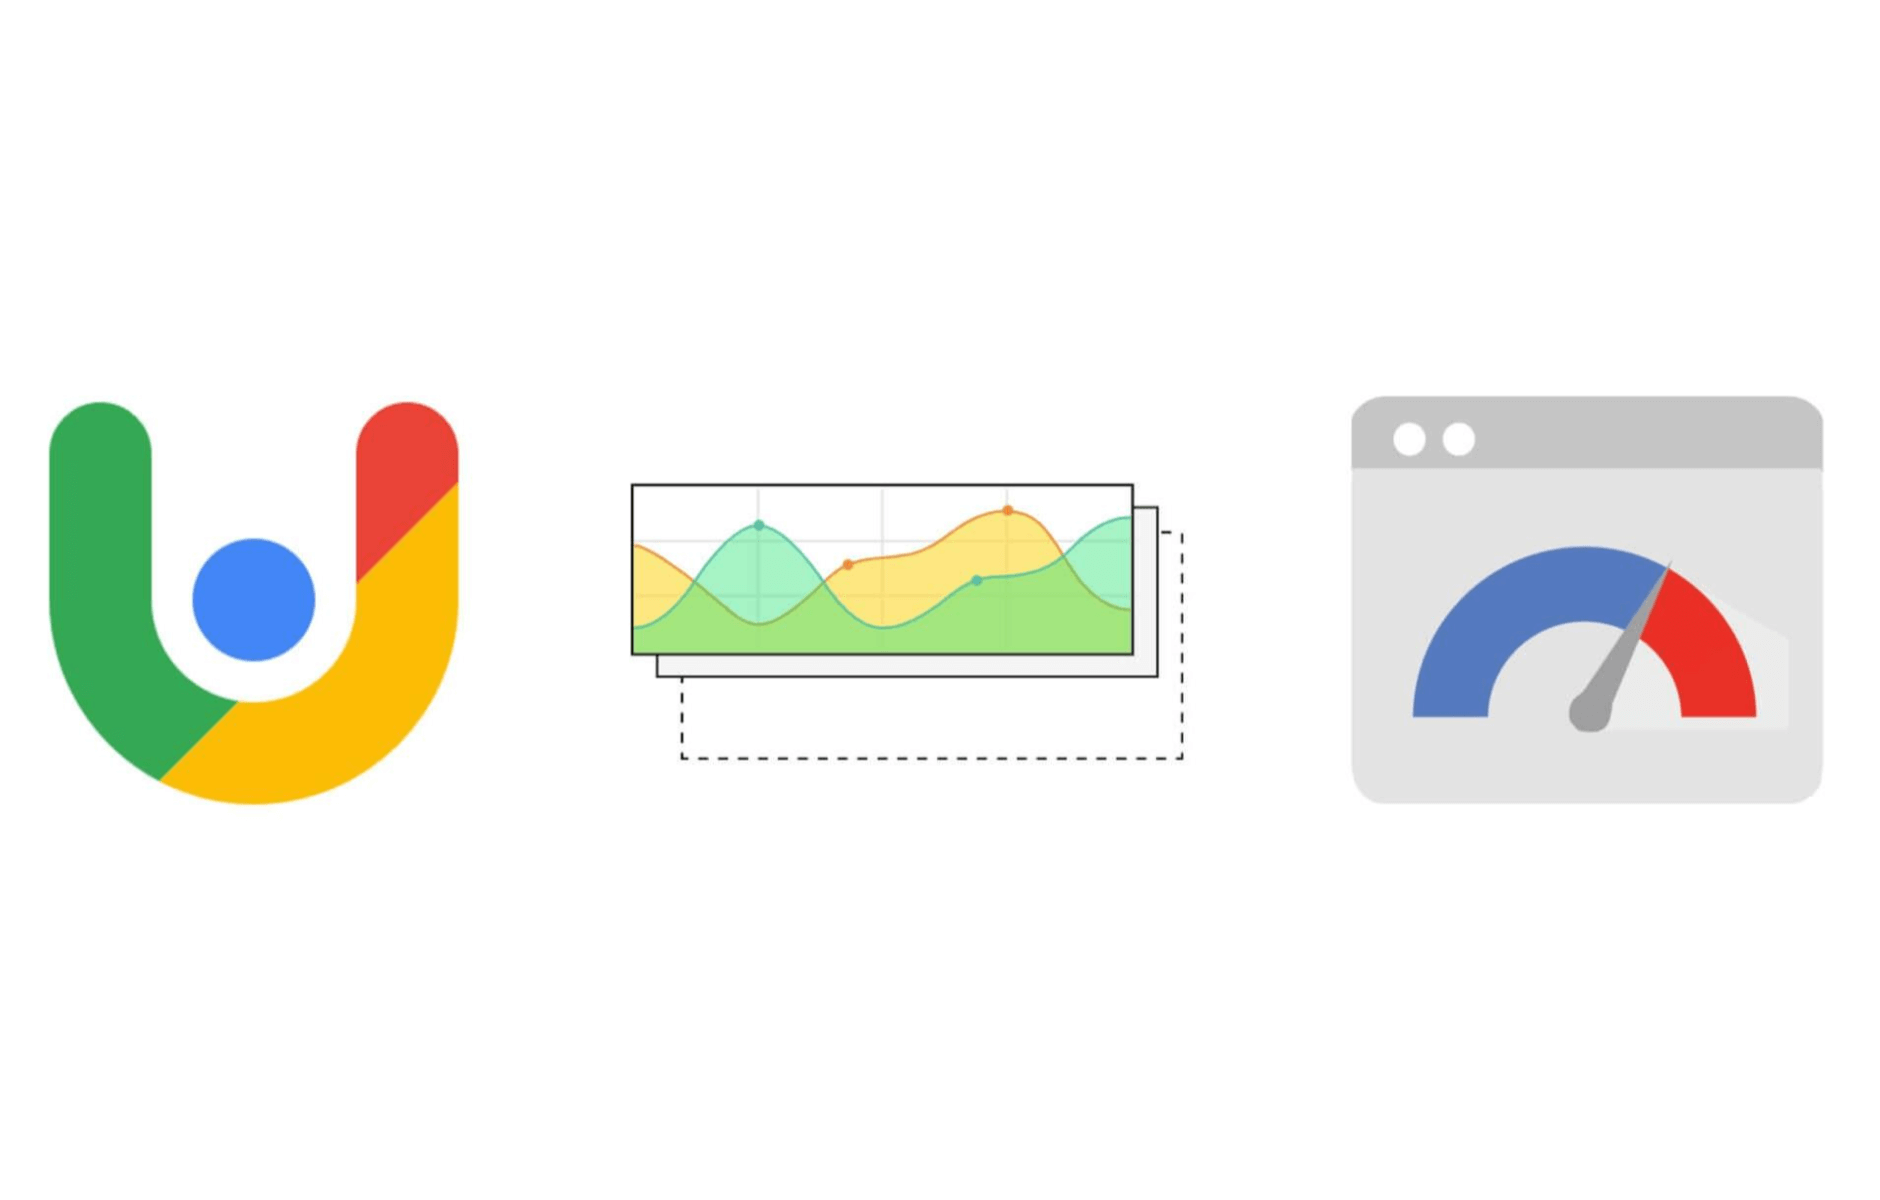 Chrome User Experience logo, PageSpeed Insights logo, and a metrics chart.